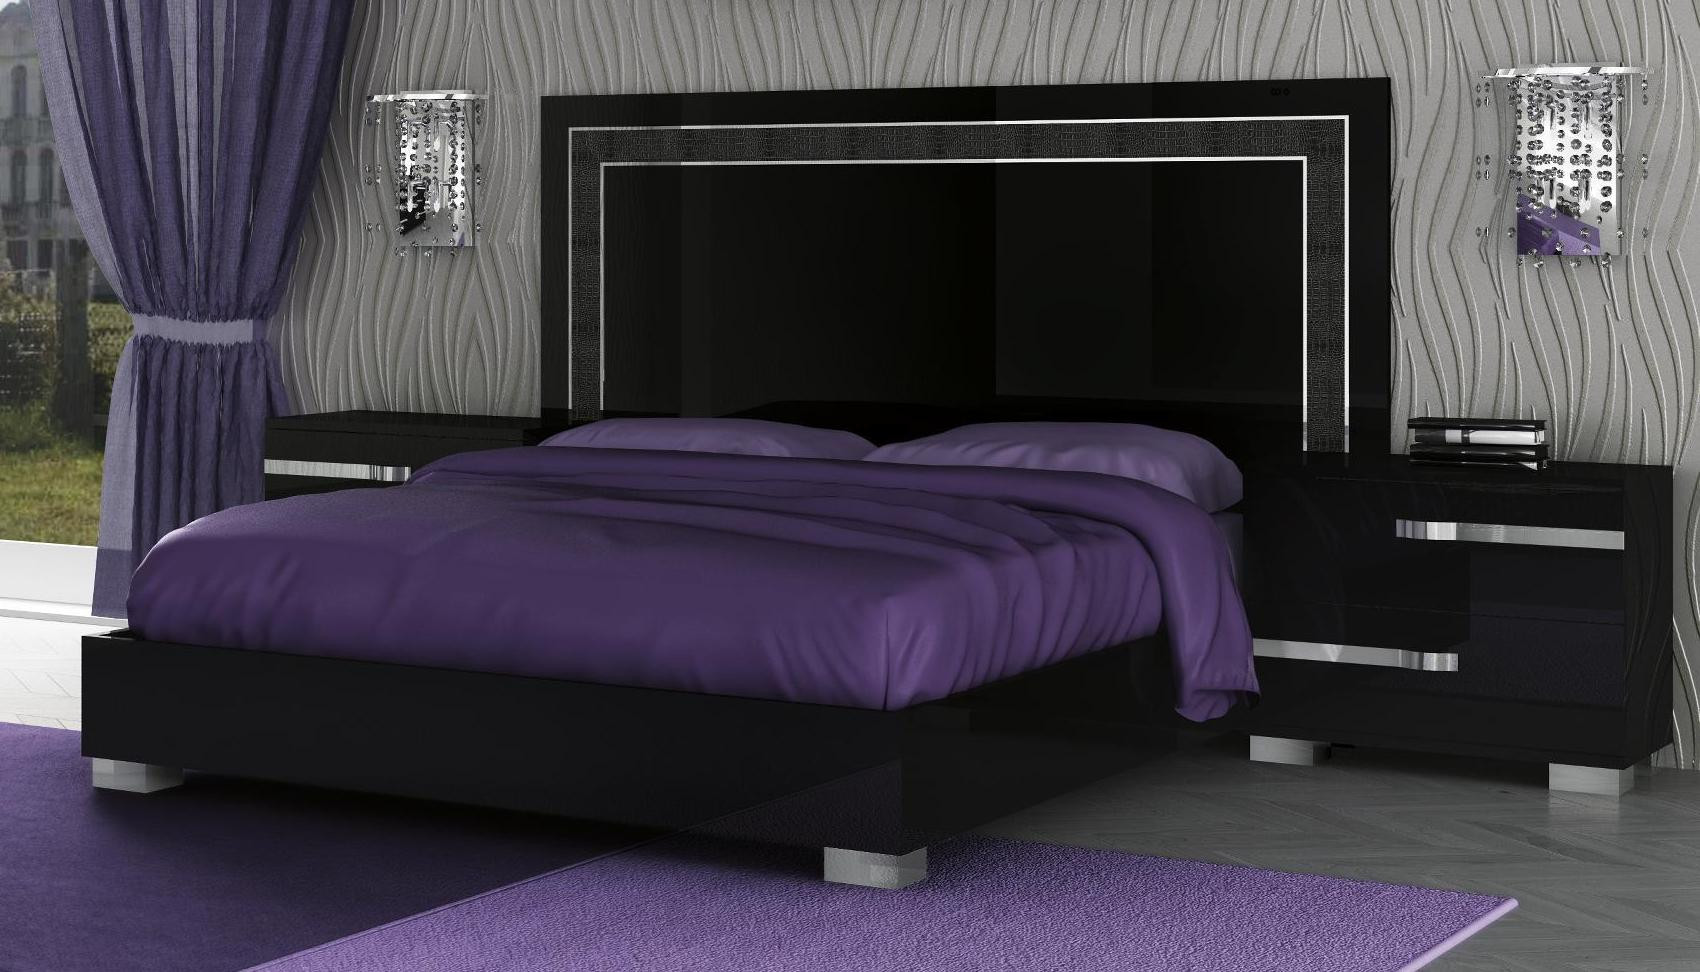 Best ideas about King Size Bedroom Sets . Save or Pin VOLARE KING SIZE MODERN BLACK BEDROOM SET 5PC MADE IN Now.